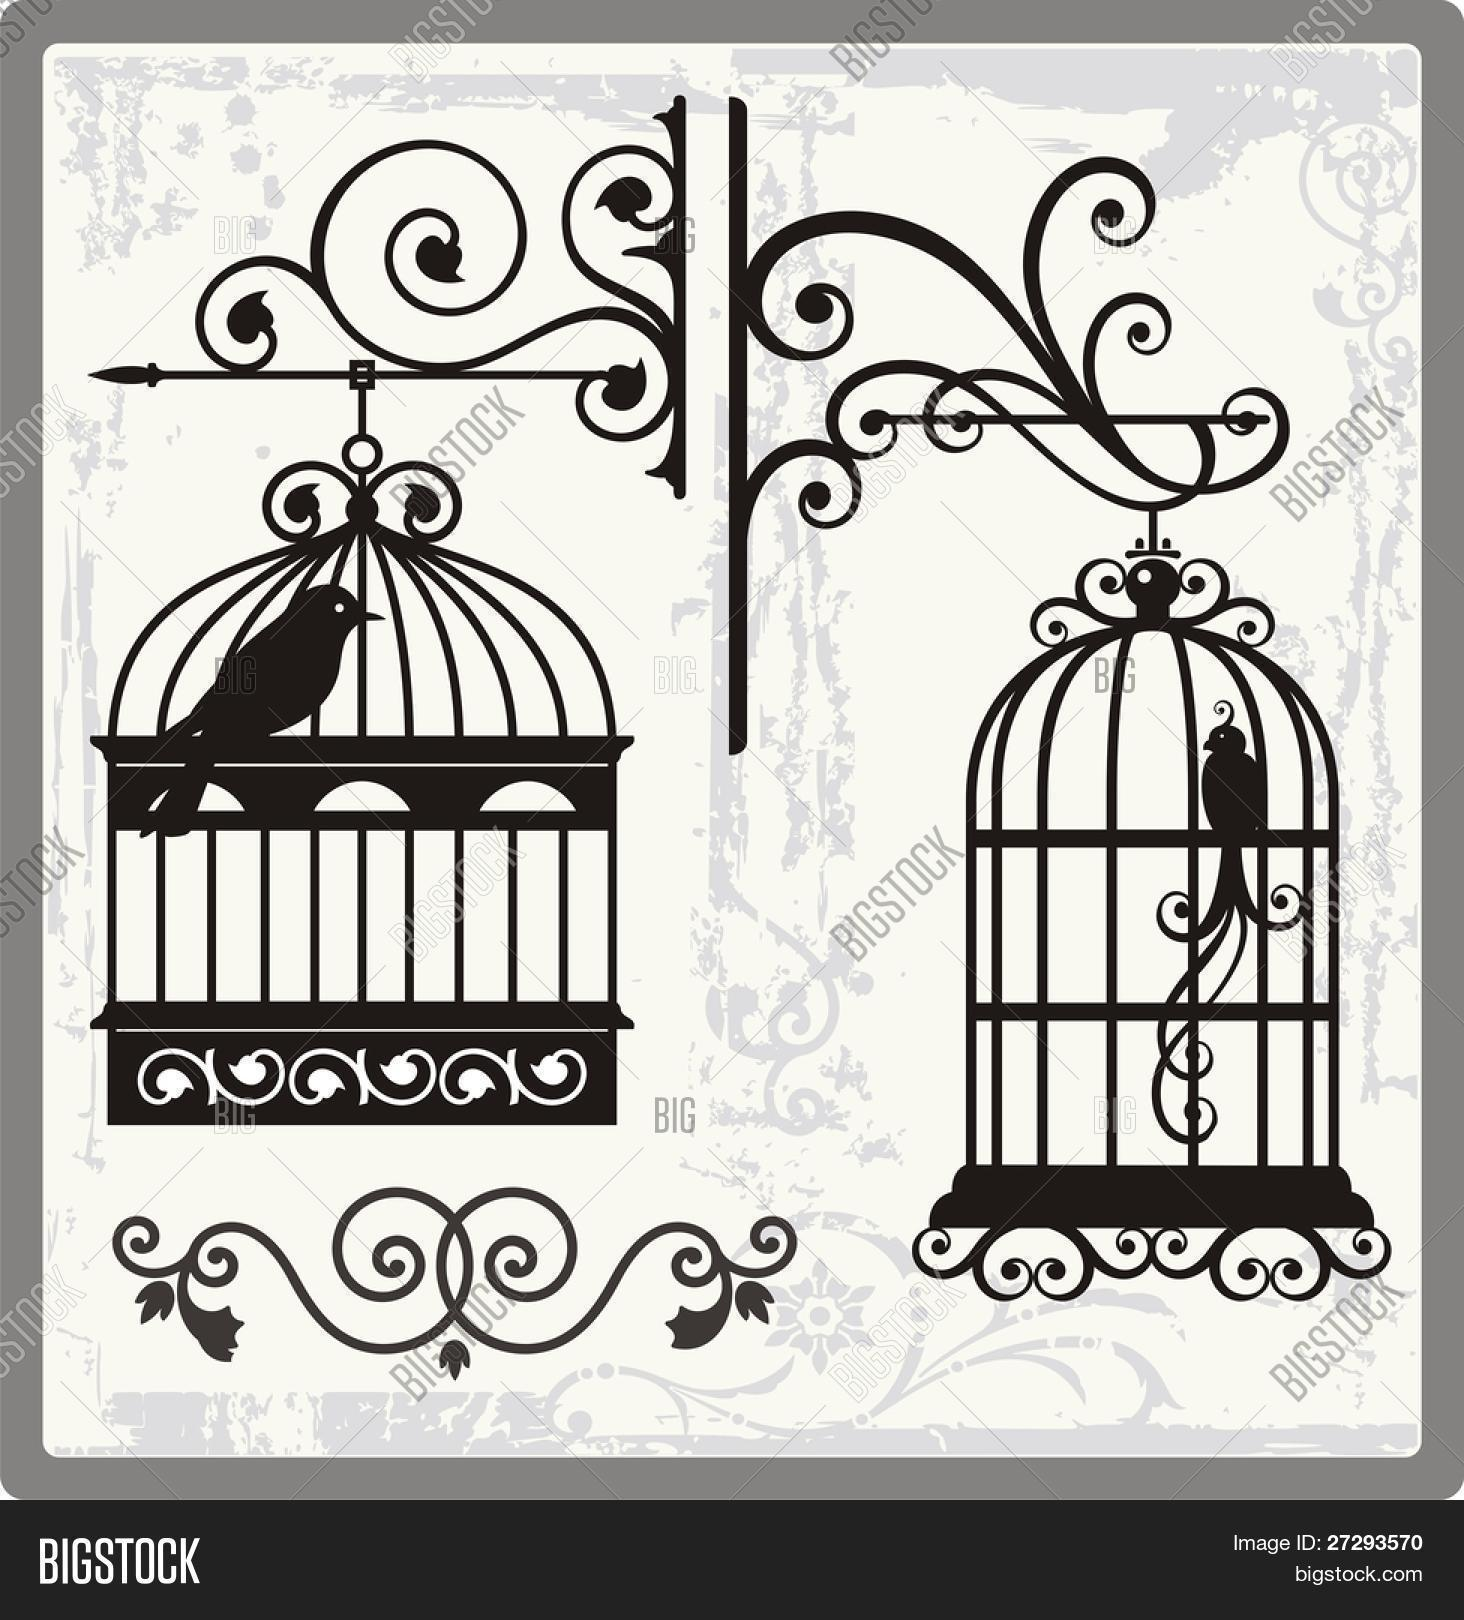 1464x1620 Drawn Birdcage Ornamental